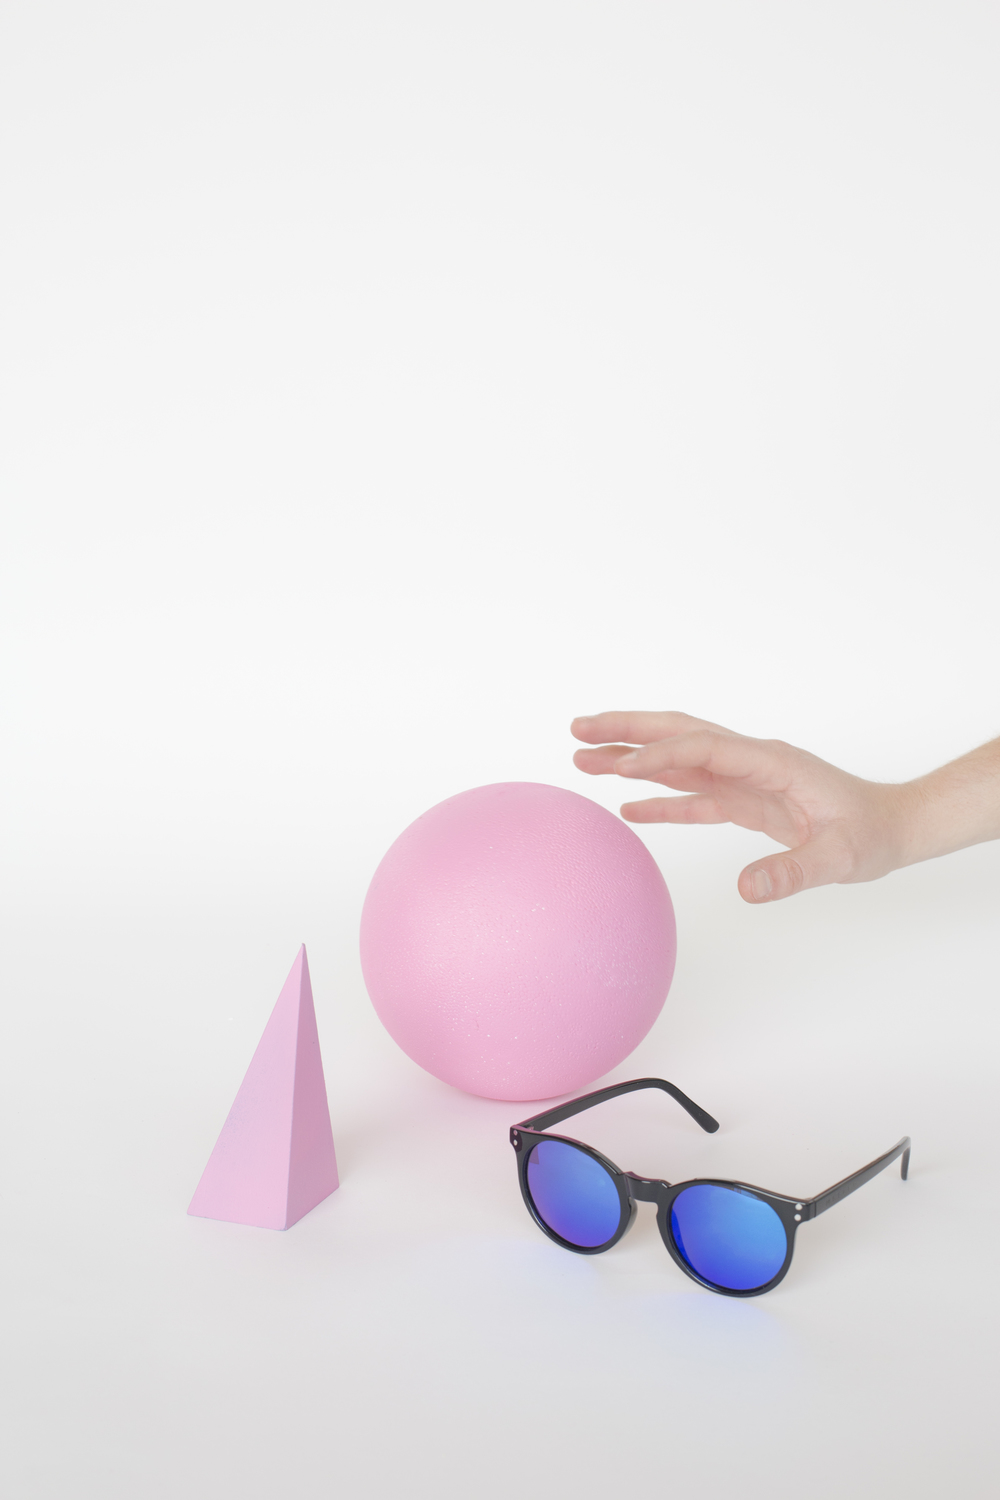 Meller Brand | Sunglasses   Shooting product